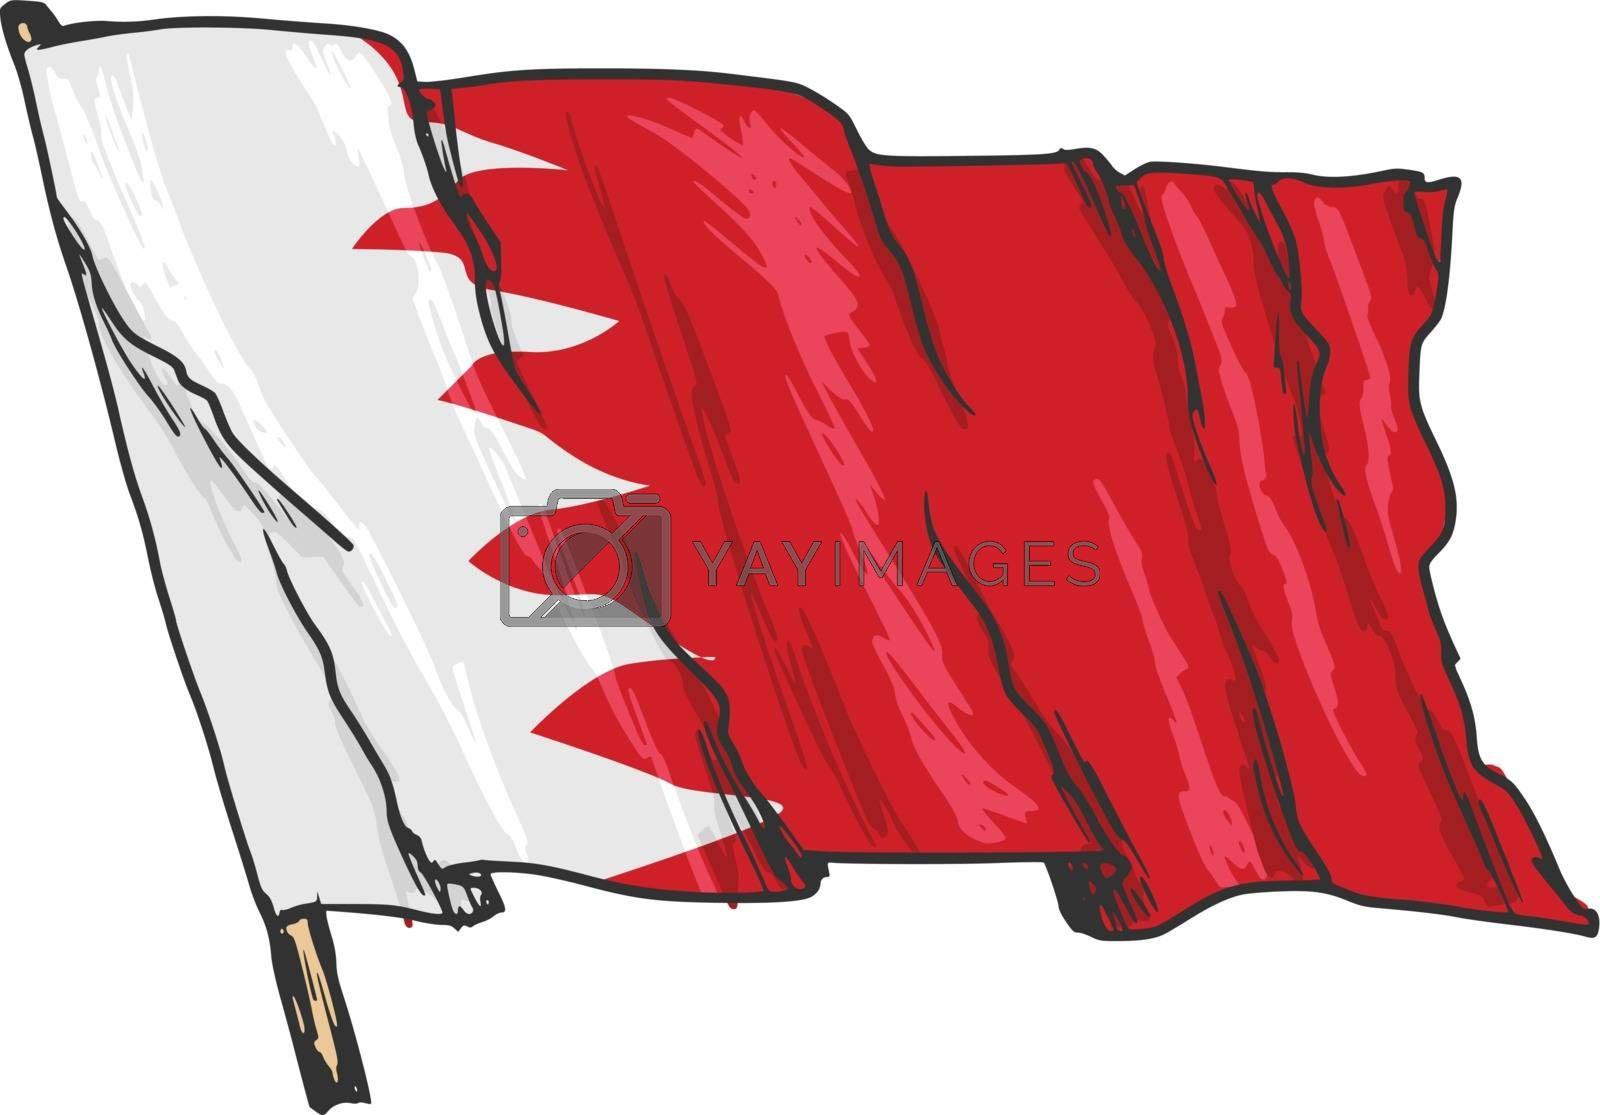 hand drawn, sketch, illustration of flag of Bahrain